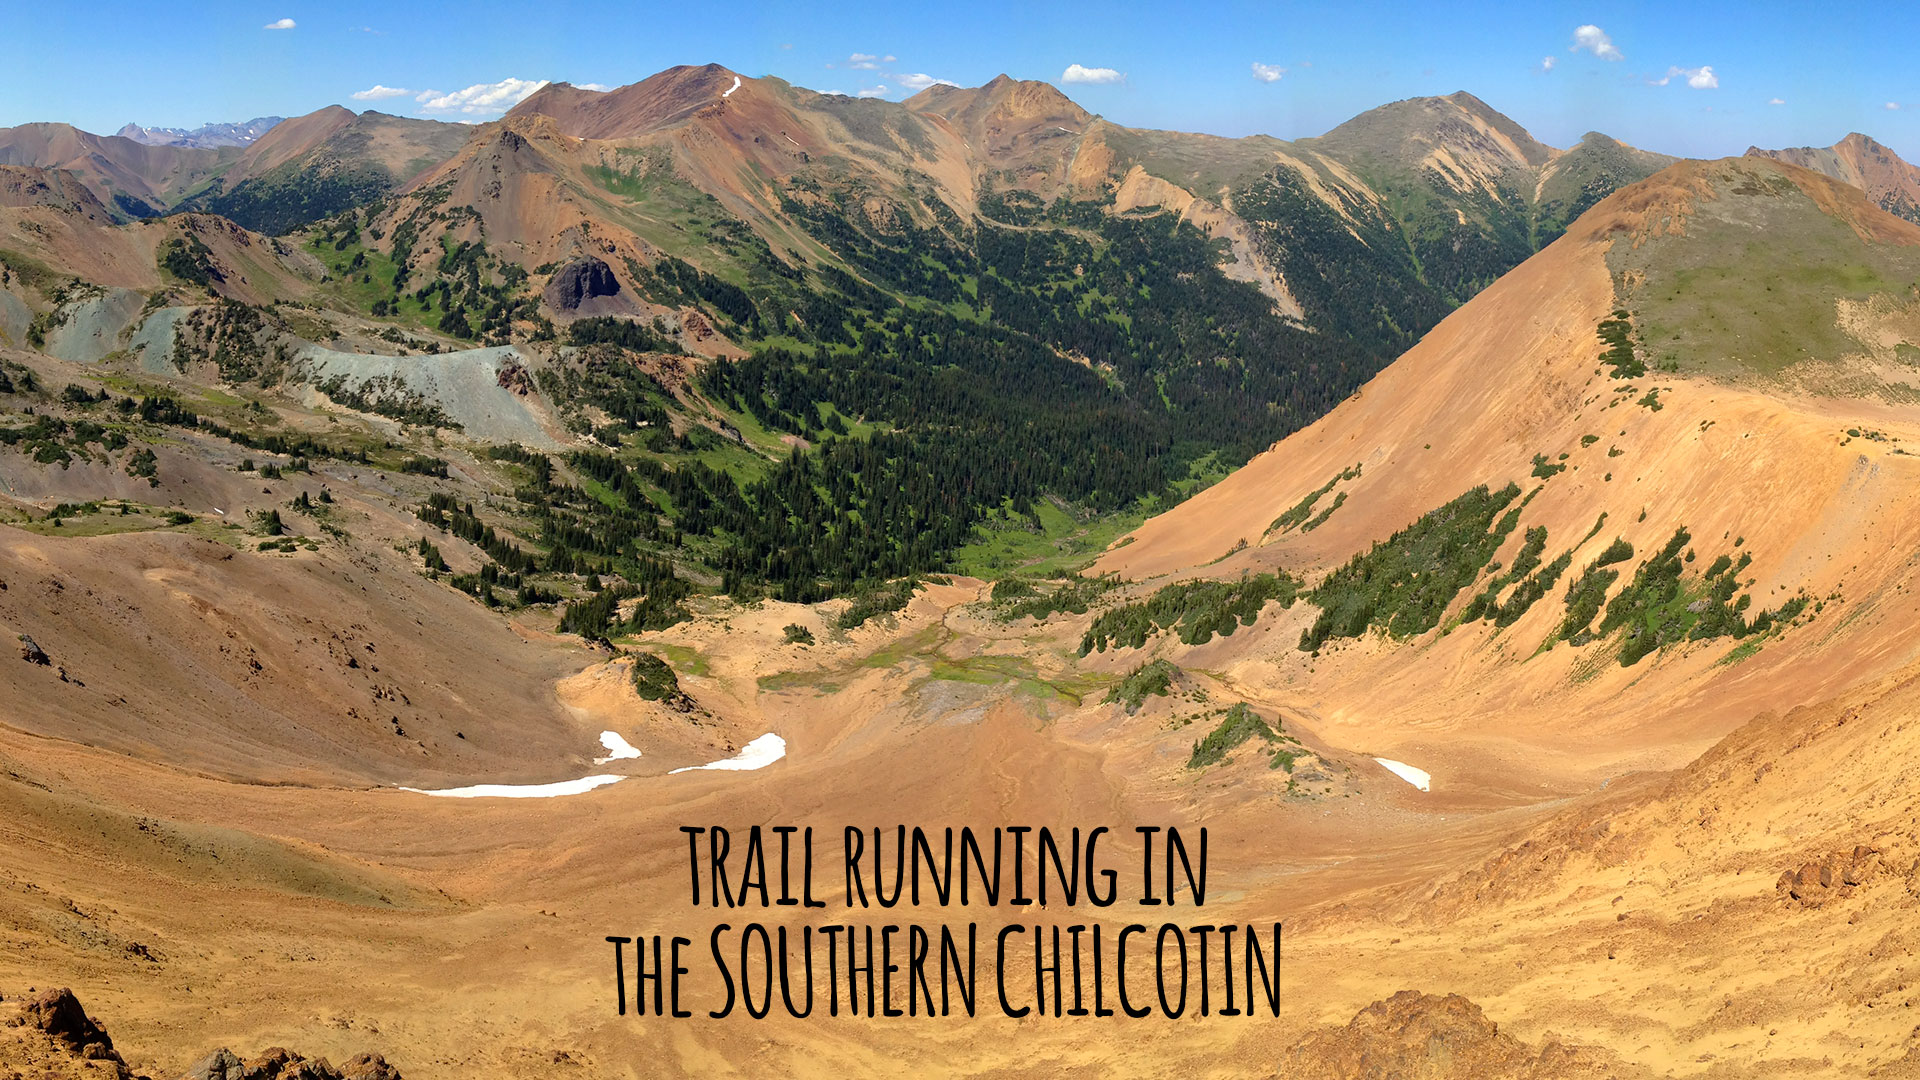 Southern Chilcotin Trail Running